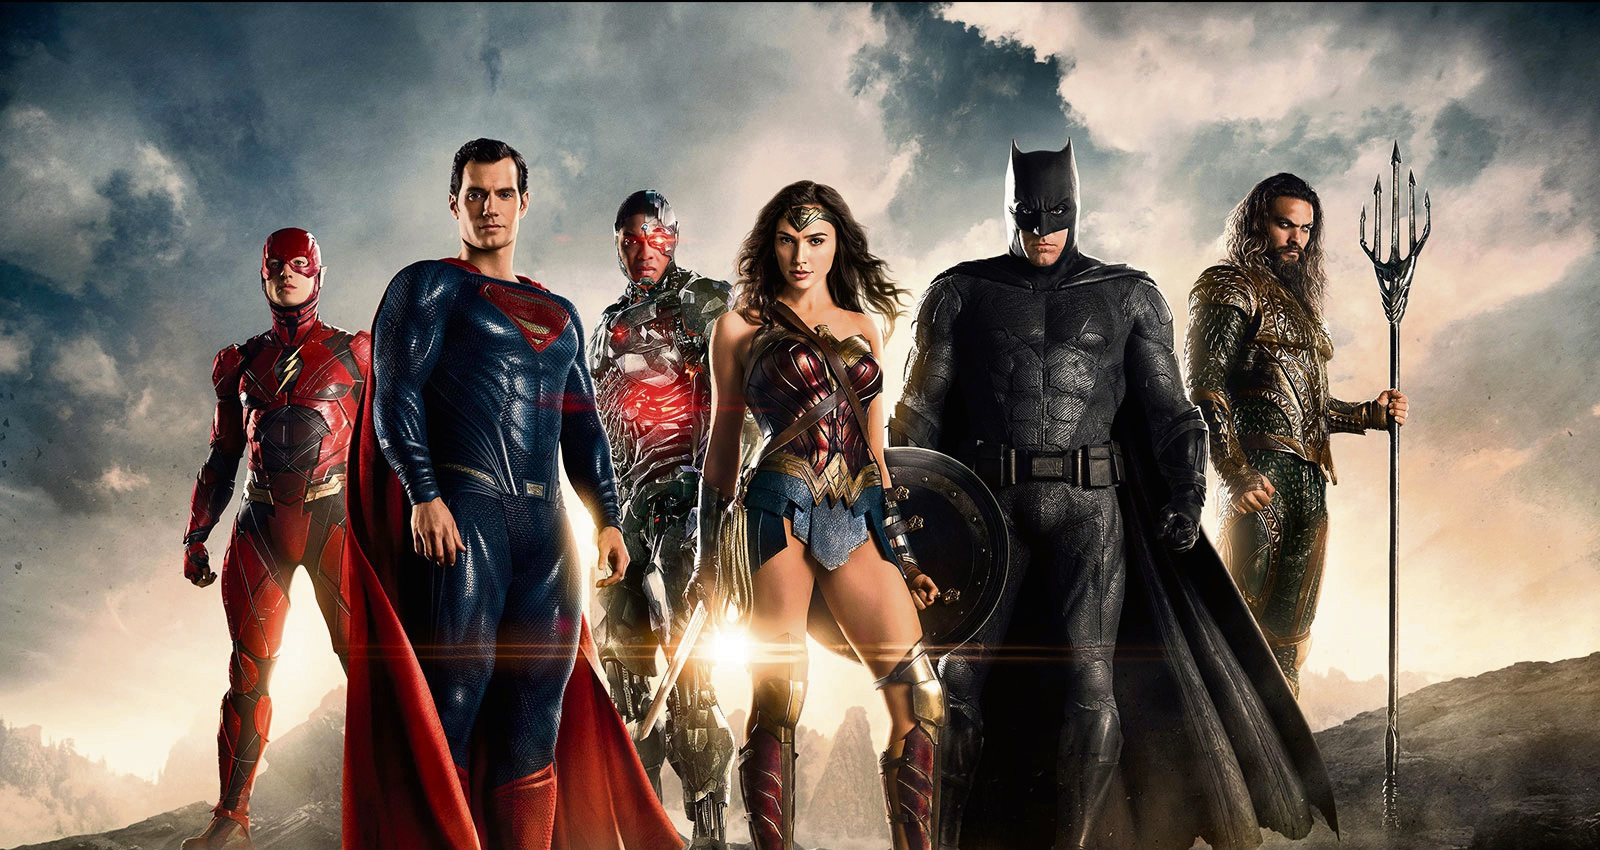 Rotten Tomatoes Delayed 'Justice League' Review Is Bad